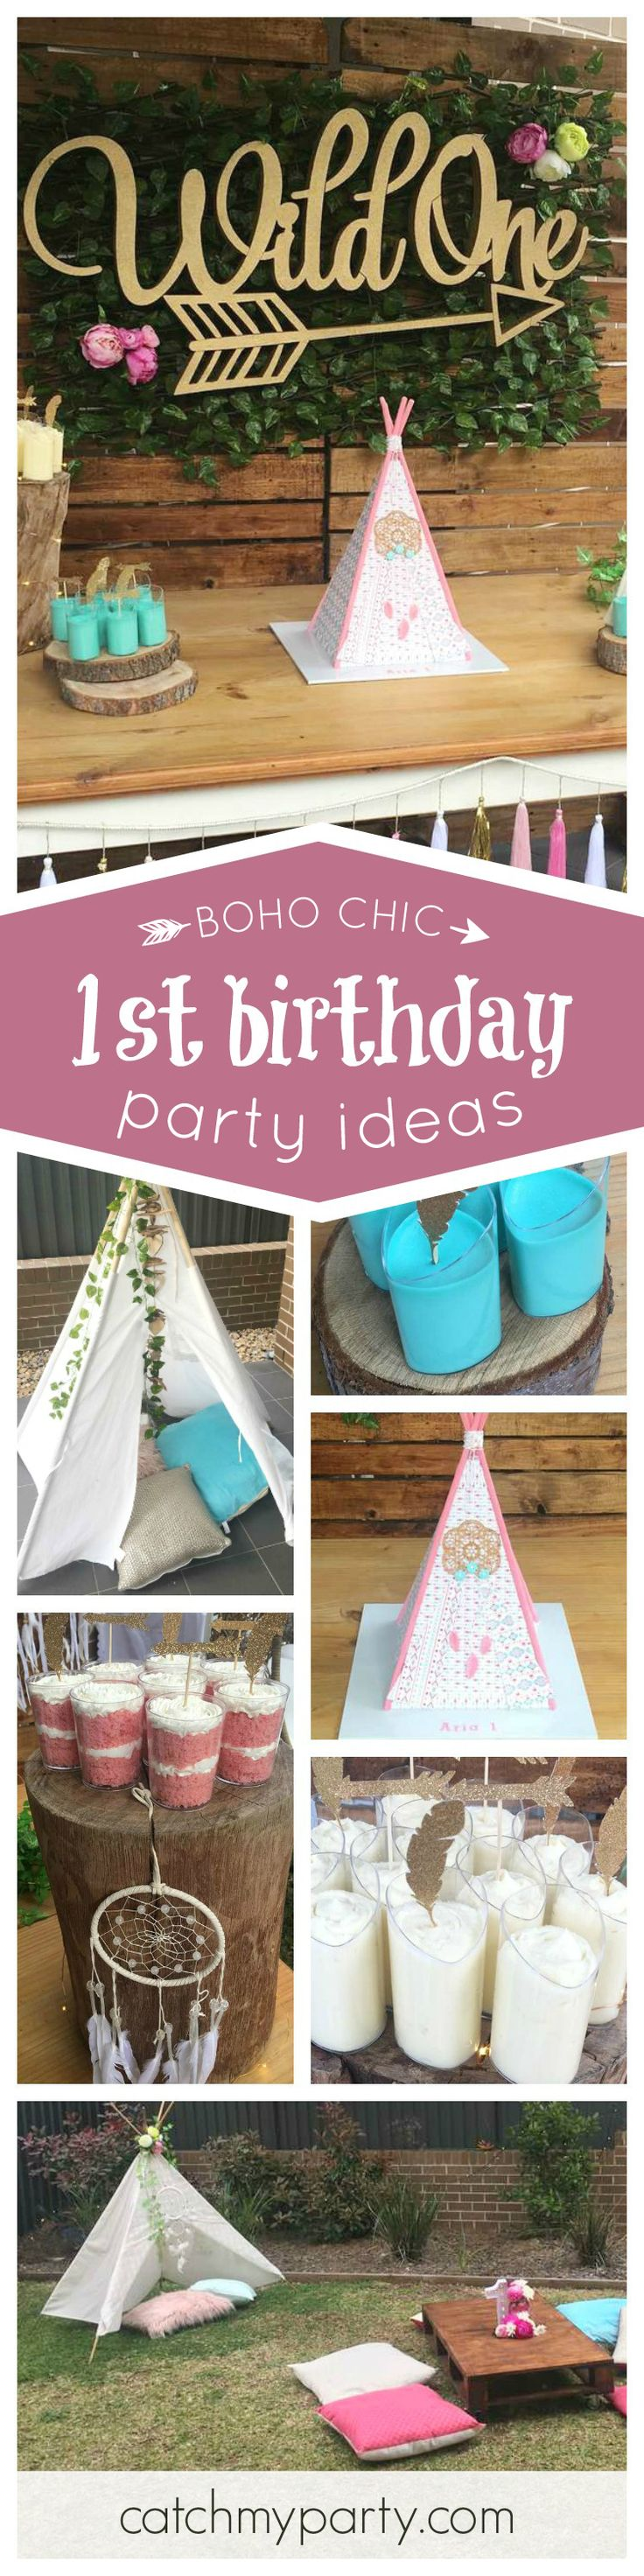 This boho chic 1st birthday is just adorable! The tent birthday cake is amazing!! See more party ideas and share yours at CatchMyParty.com